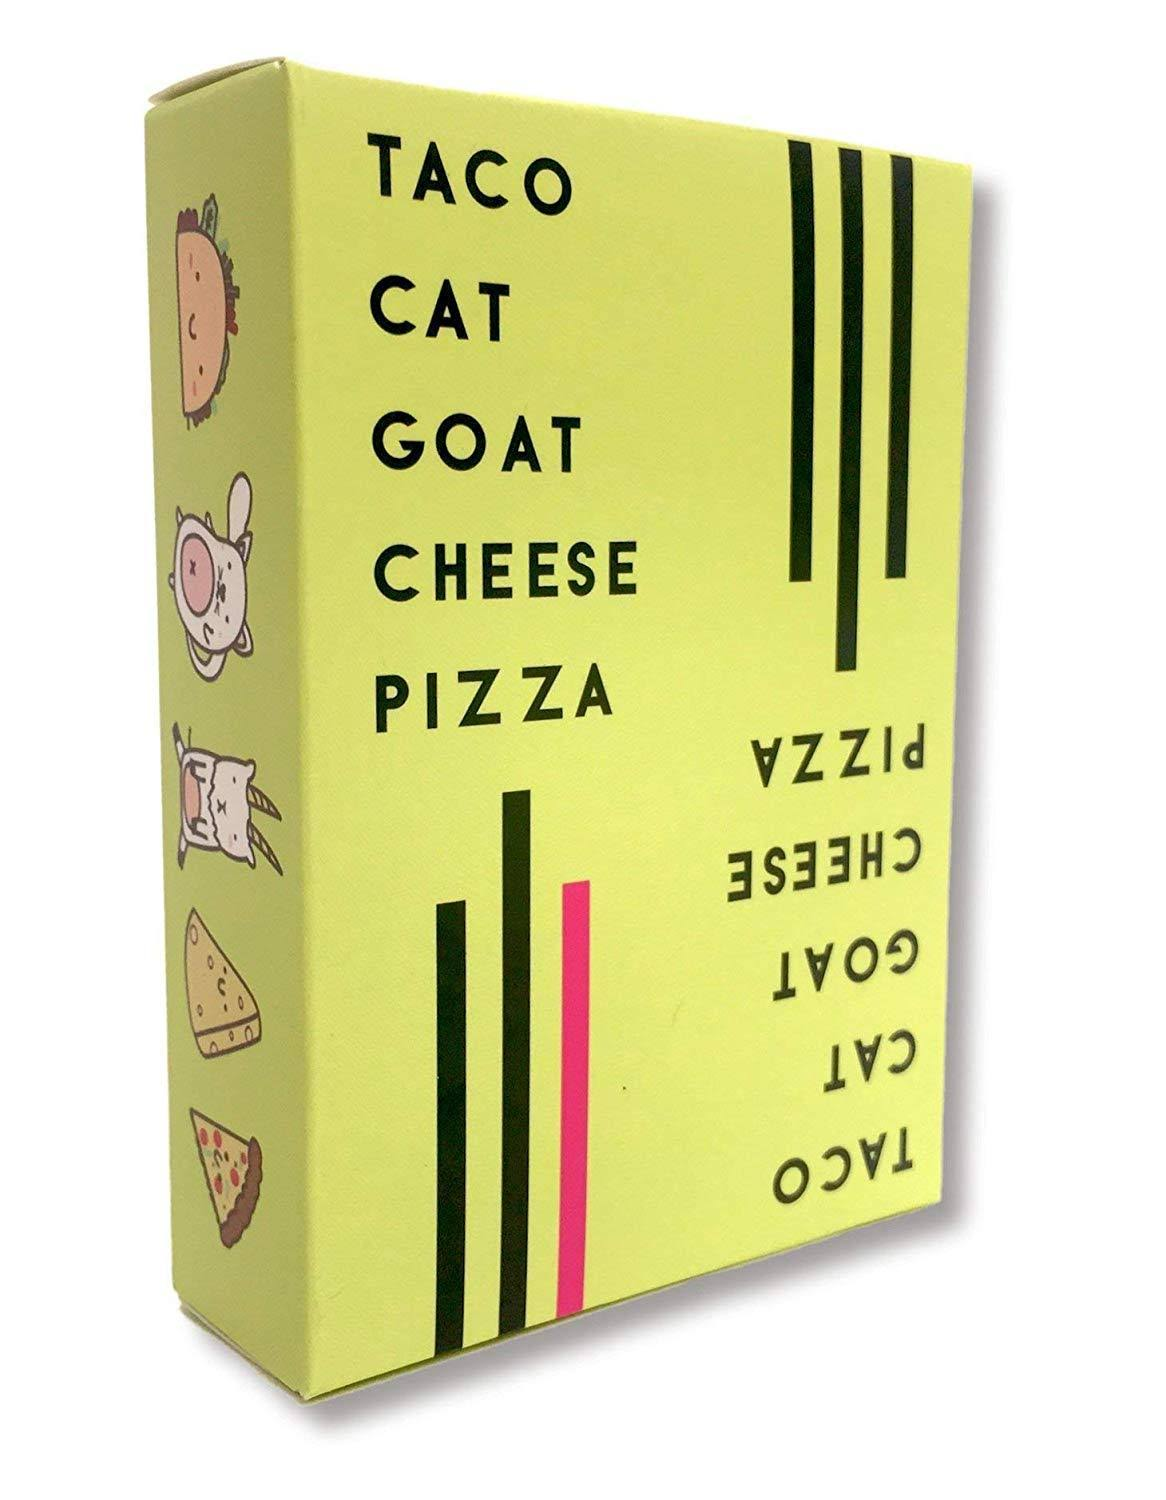 Taco Cat Goat Cheese Pizza Family Board Game